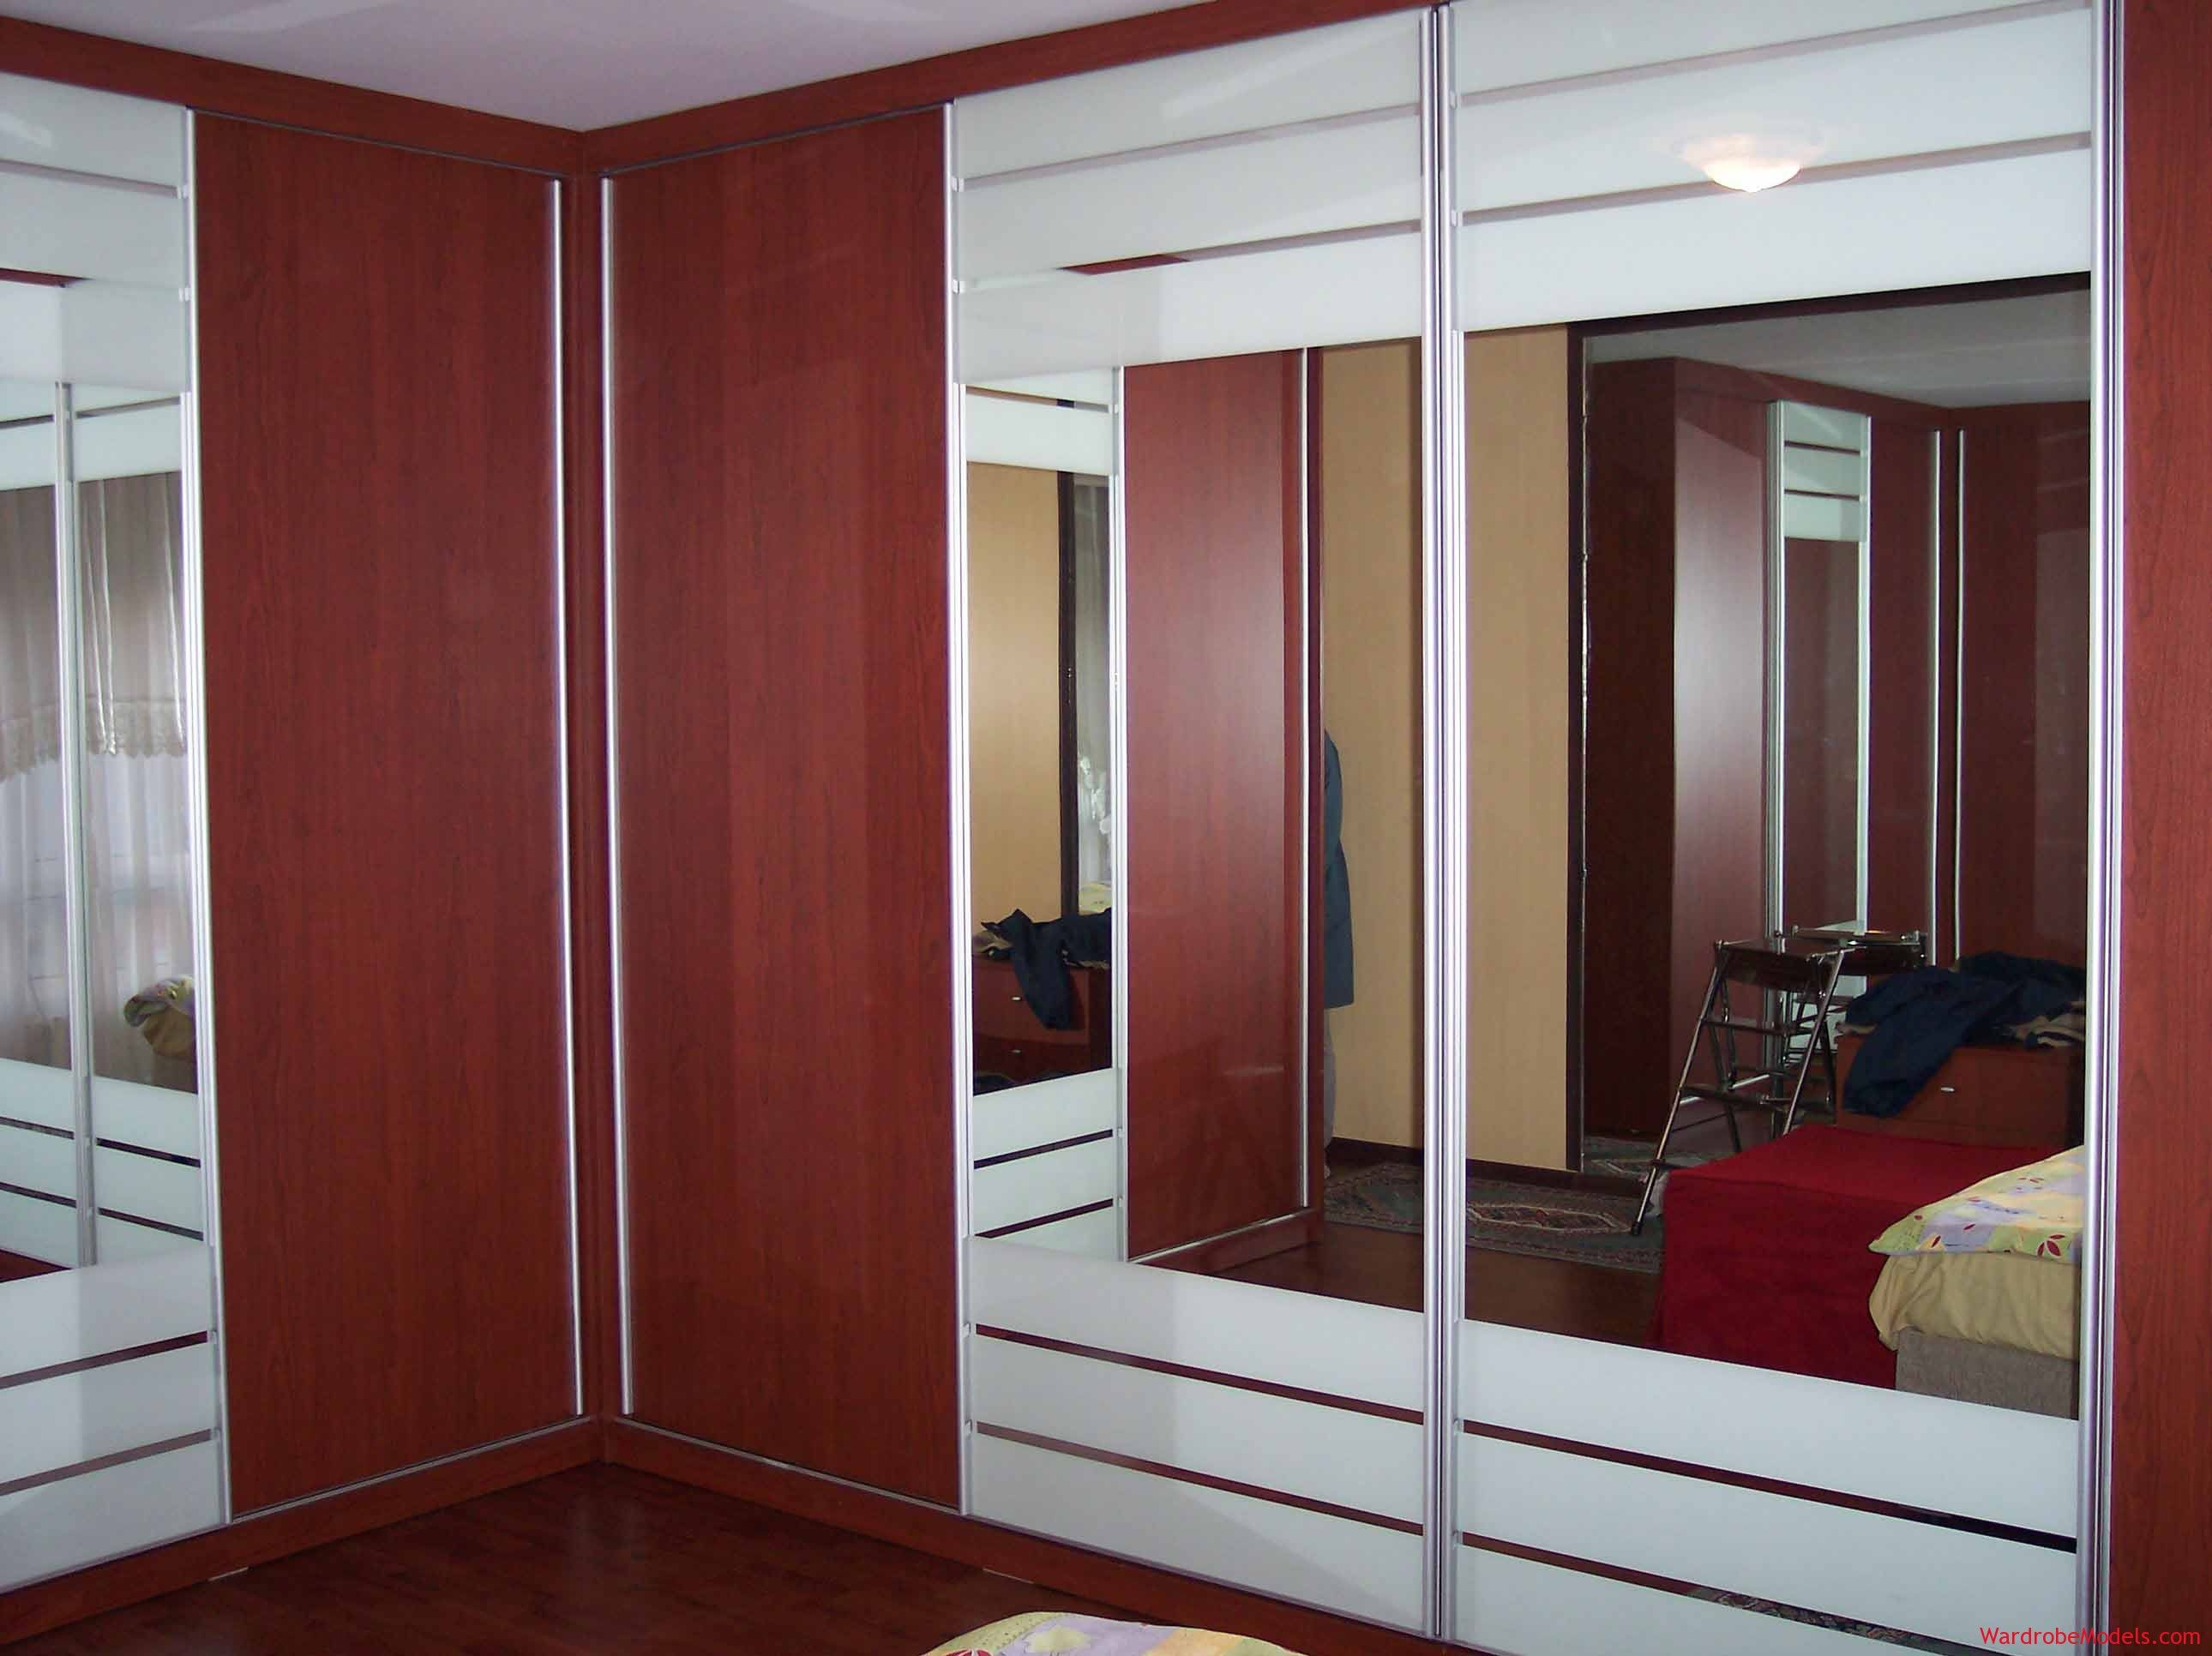 Bedroom furniture wardrobes - Grey Bedroom Furniture Wardrobe Models